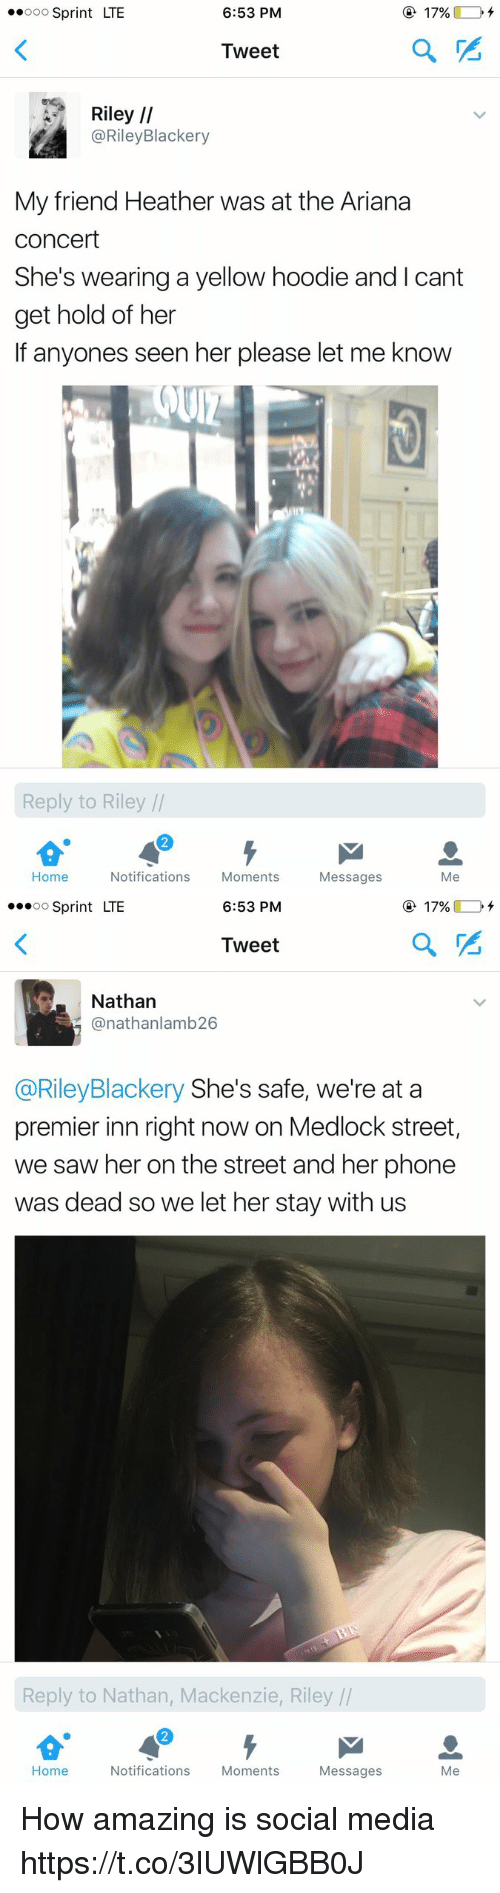 Phone, Saw, and Social Media: ..ooo Sprint LTE  6:53 PM  17%  Tweet  Riley  II  @Riley Blackery  My friend Heather was at the Ariana  Concert  She's wearing a yellow hoodie and I cant  get hold of her  If anyones seen her please let me know  Reply to Riley  Home  Notifications  Moments  Messages  Me   6:53 PM  O 17%  OO  Sprint LTE  Tweet  Nathan  (anathanlamb 26  @Riley Blackery She's safe, we're at a  premier inn right now on Medlock street,  we saw her on the street and her phone  was dead so we let her stay with us  Reply to Nathan, Mackenzie, Riley  Home  Notifications  Moments  Messages  Me How amazing is social media https://t.co/3lUWlGBB0J